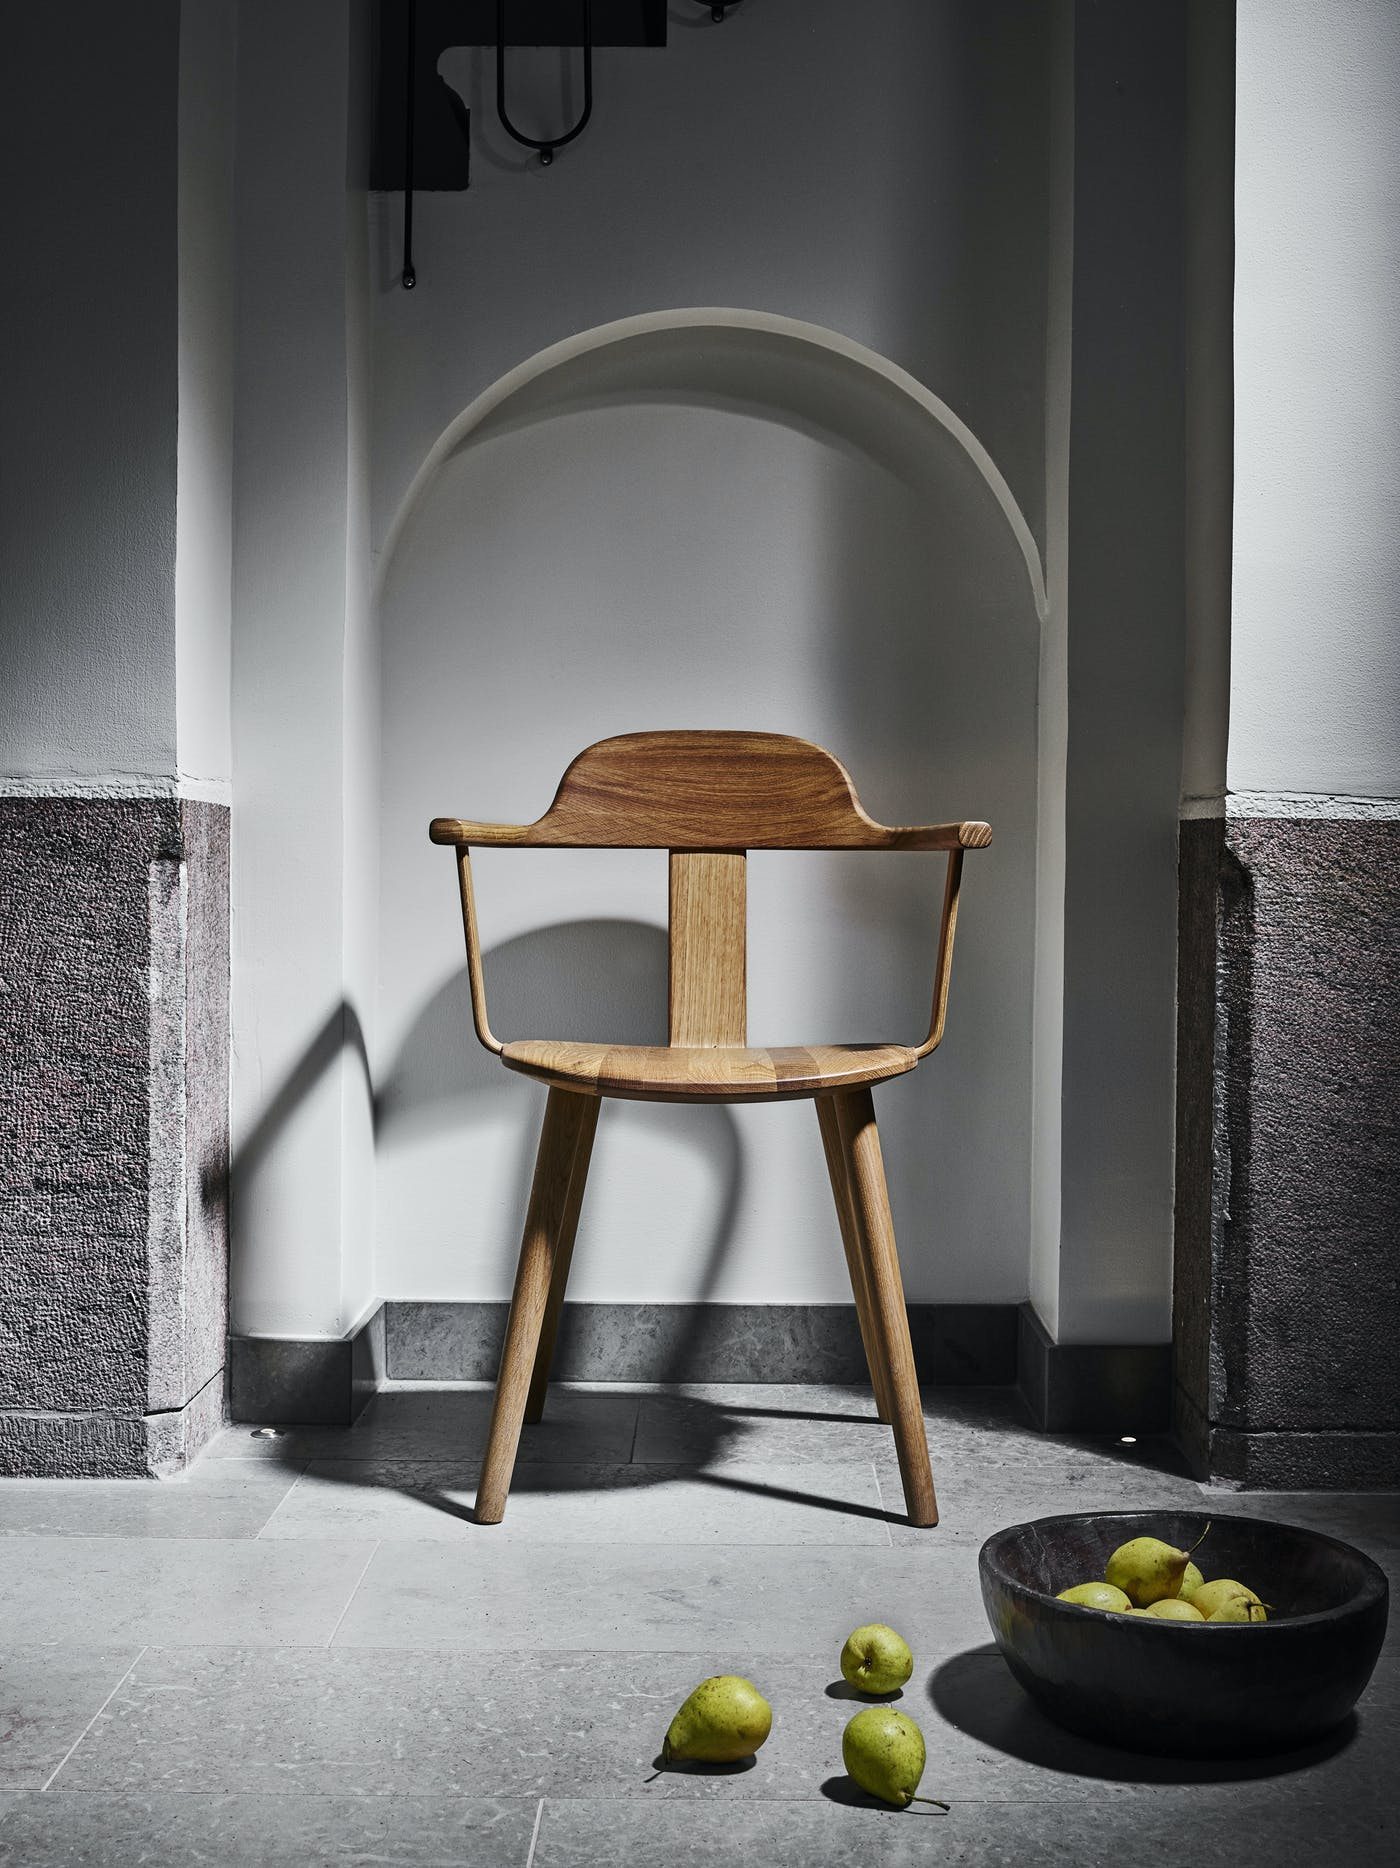 Stolab Chair Sture armchair gallery picture 01